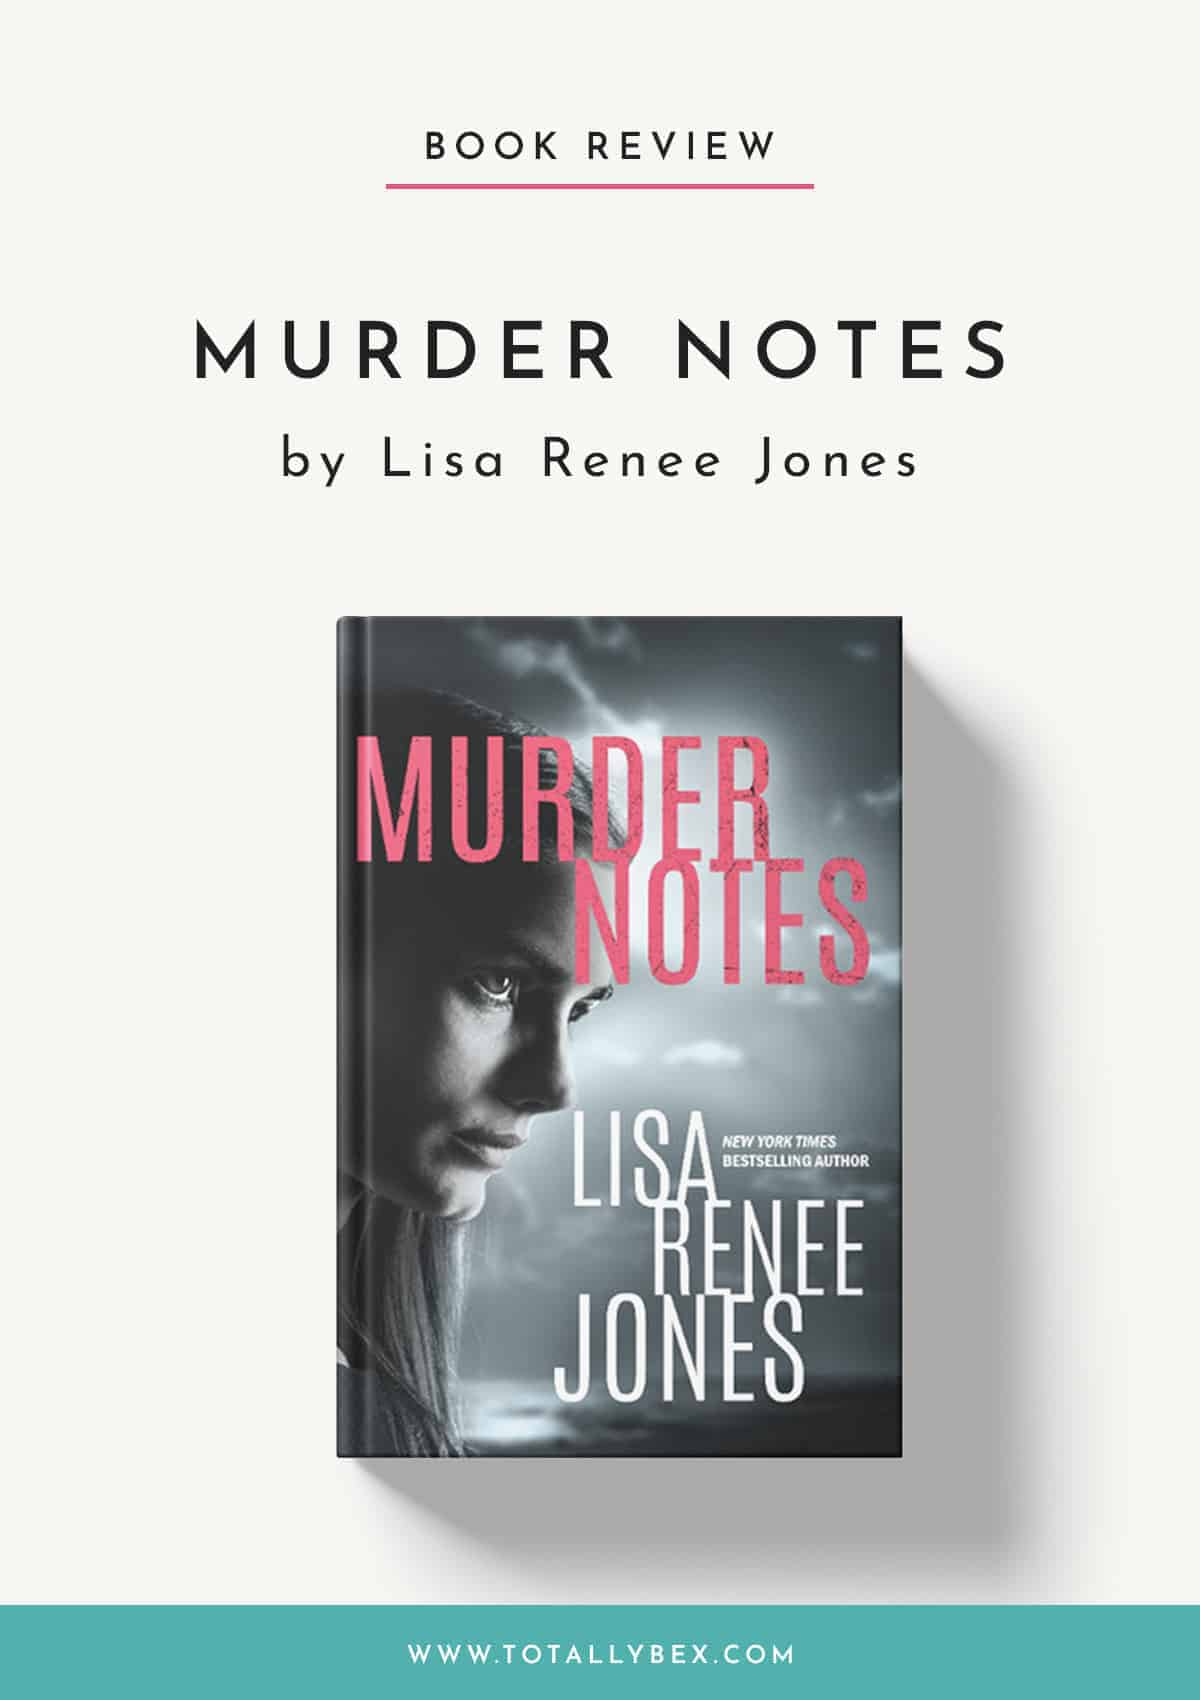 Murder Notes by Lisa Renee Jones-Book Review